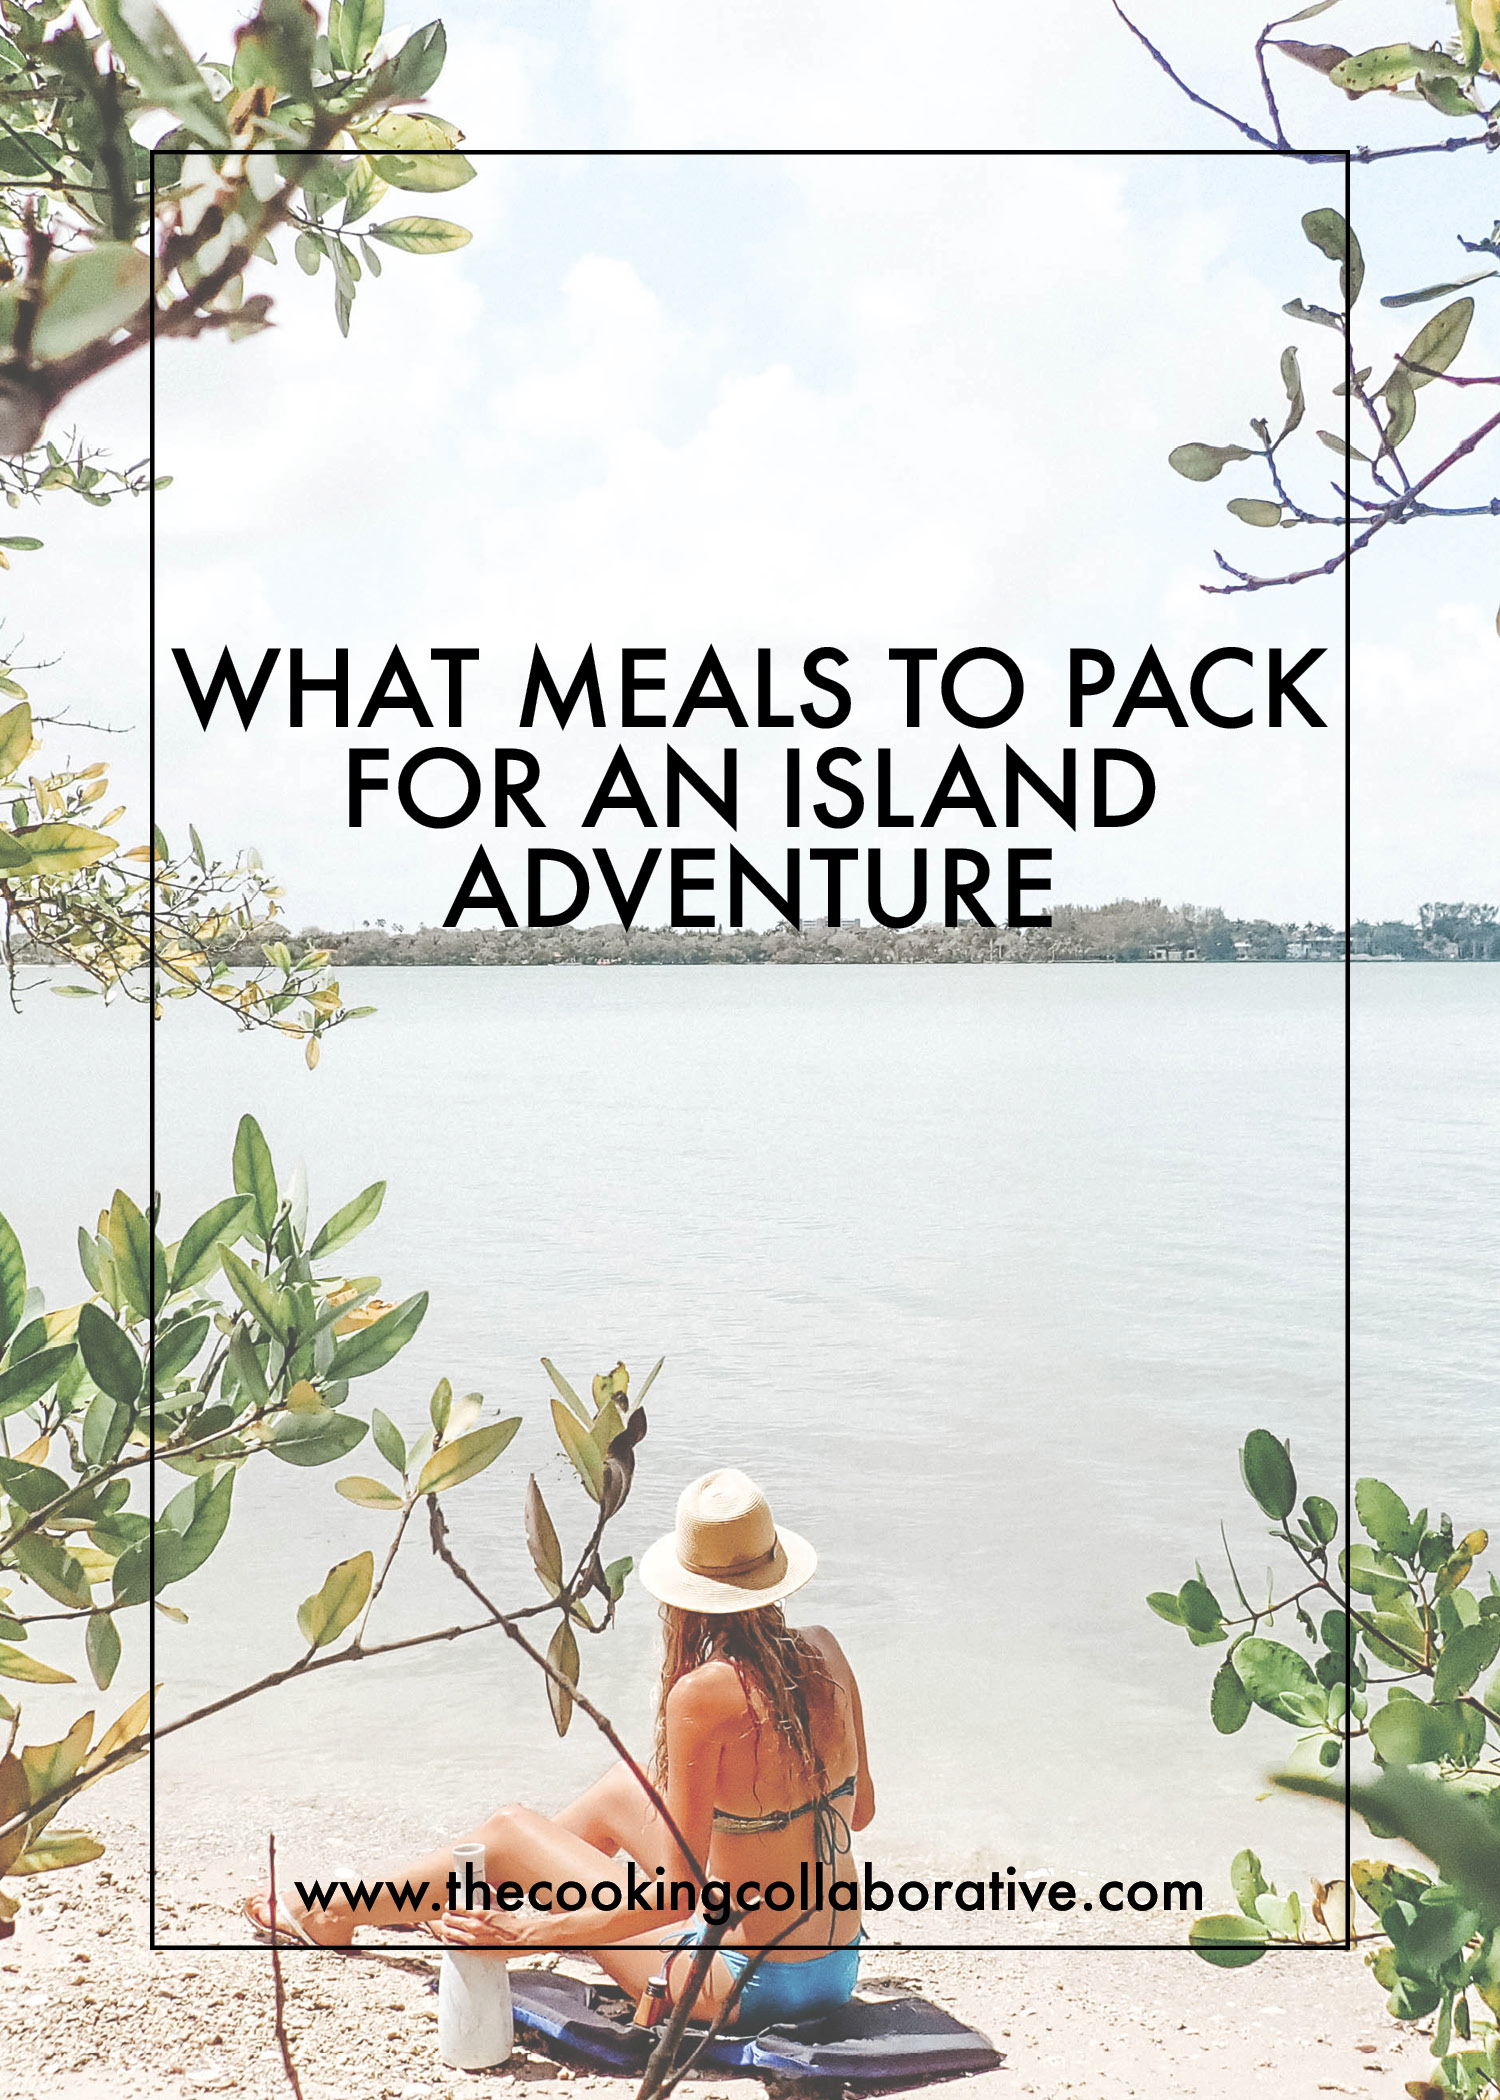 what meals to pack on an island getaway.jpg